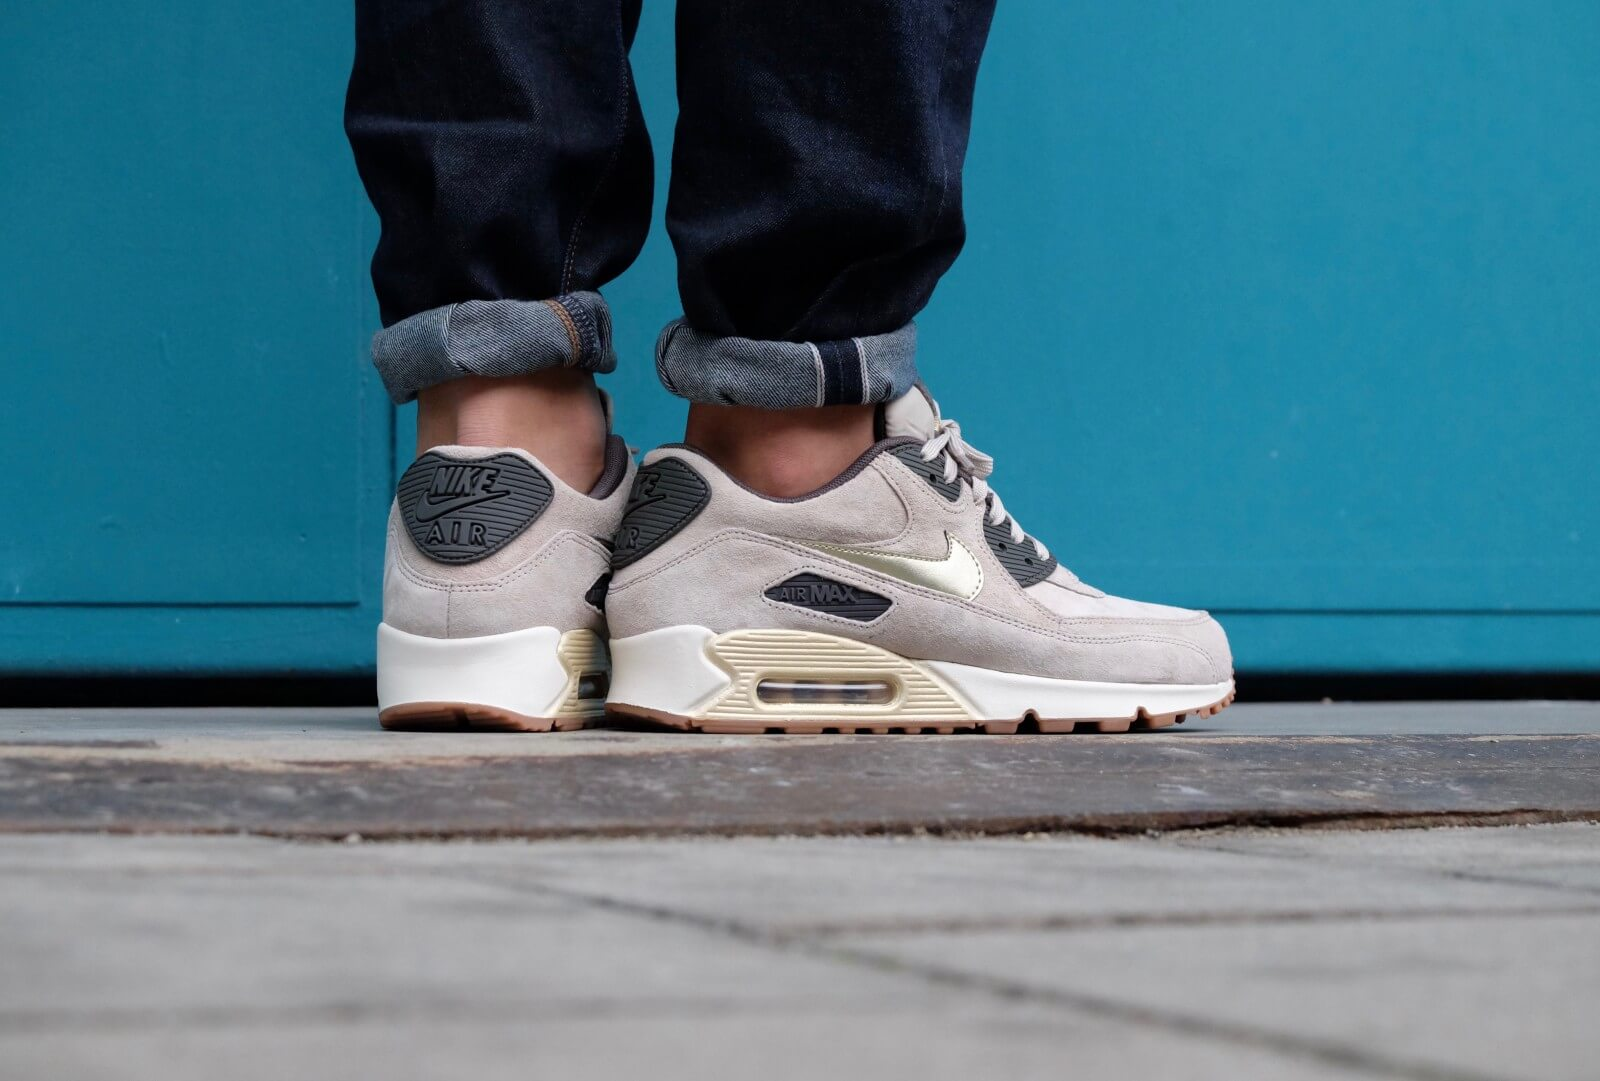 Nike WMNS Air Max 90 PRM Suede String/Metallic Gold Grain/Dark Storm/Black  - 818598-200